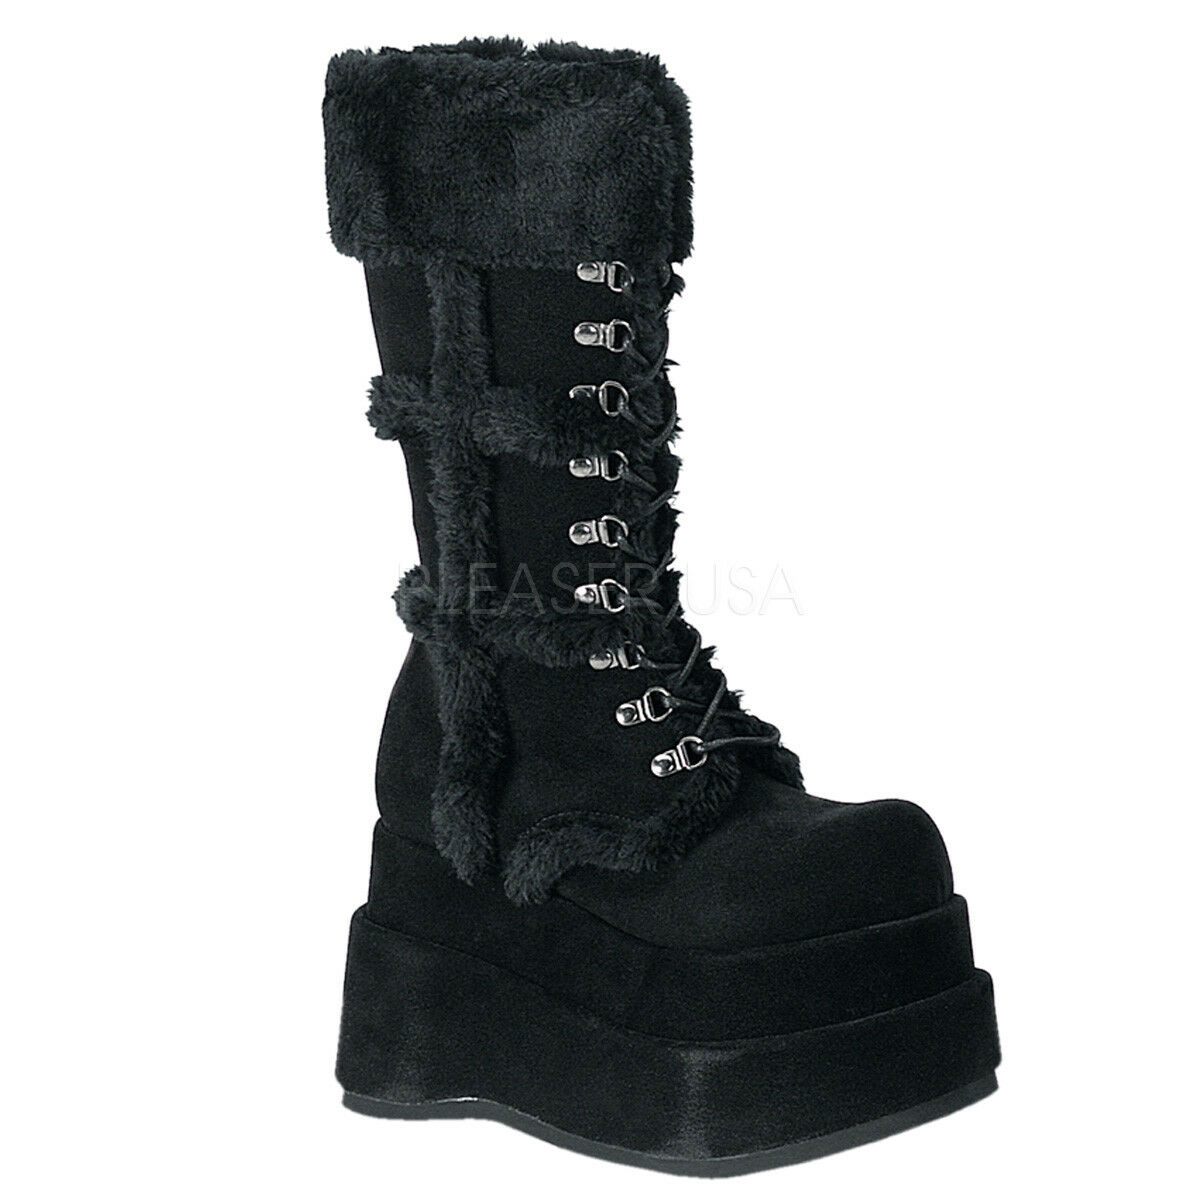 Demonia BEAR-202 Vegan Black Suede D-Ring Lace Up Mid Calf Boots